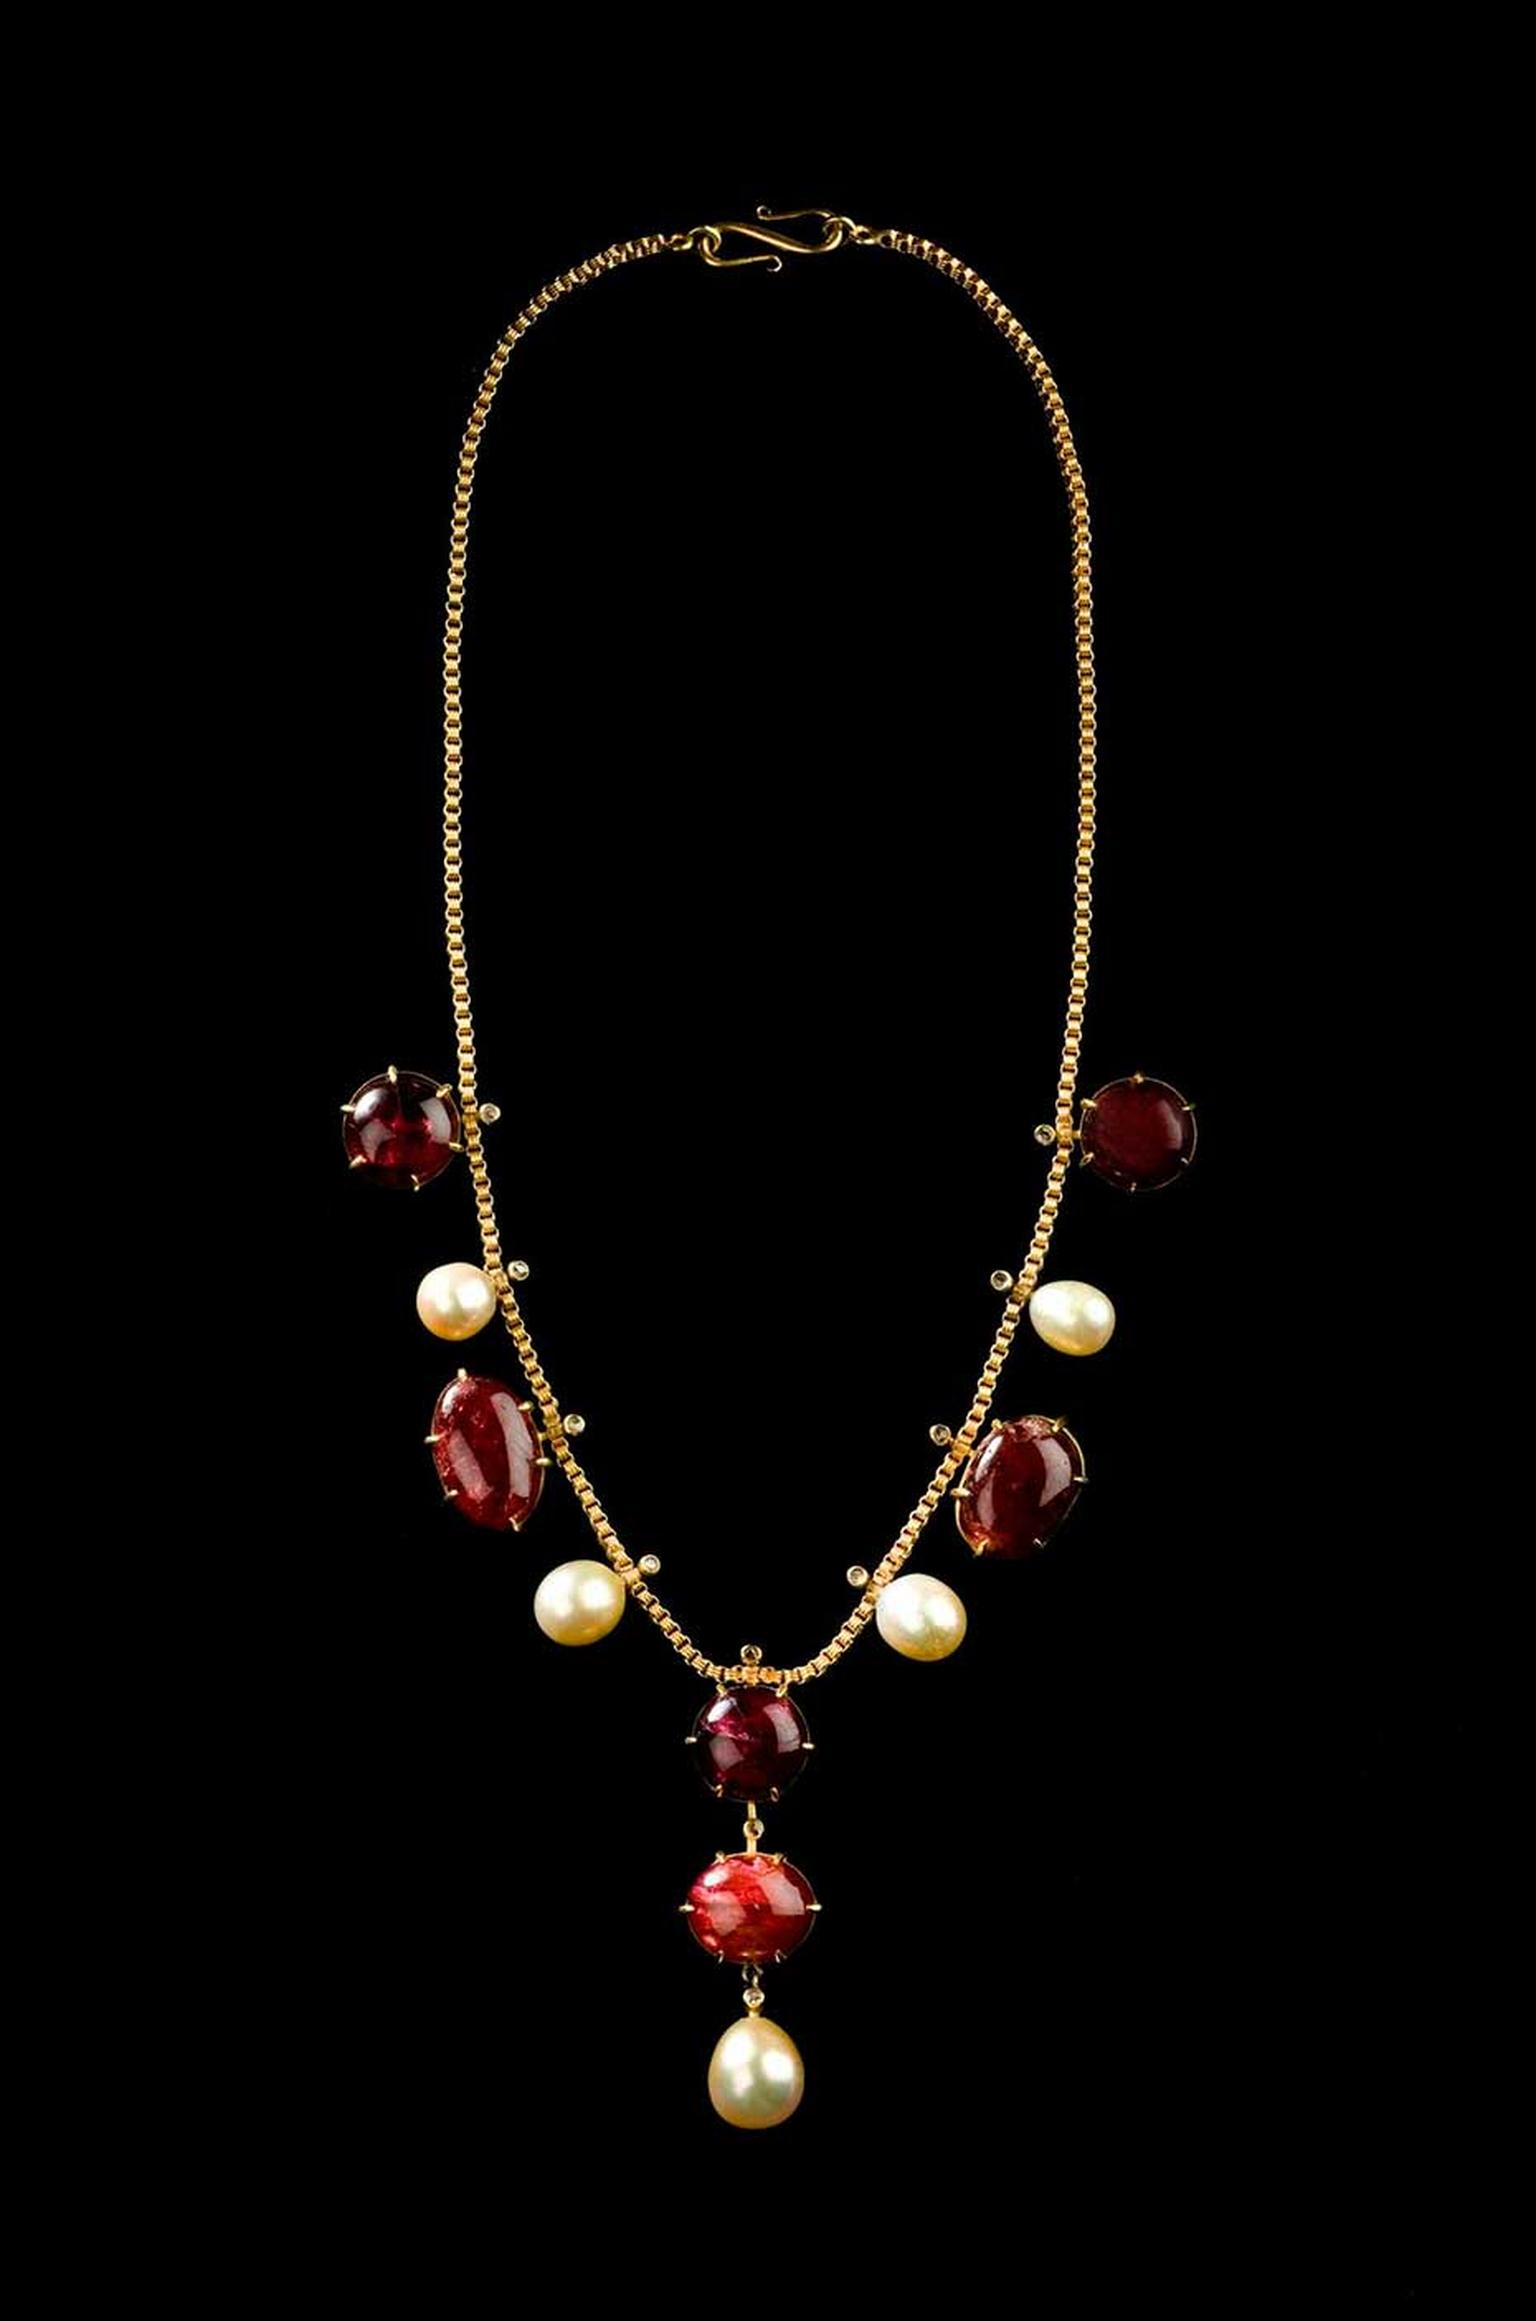 Ming dynasty cabochon ruby and natural pearl necklace at the Susan Ollemans Gallery.